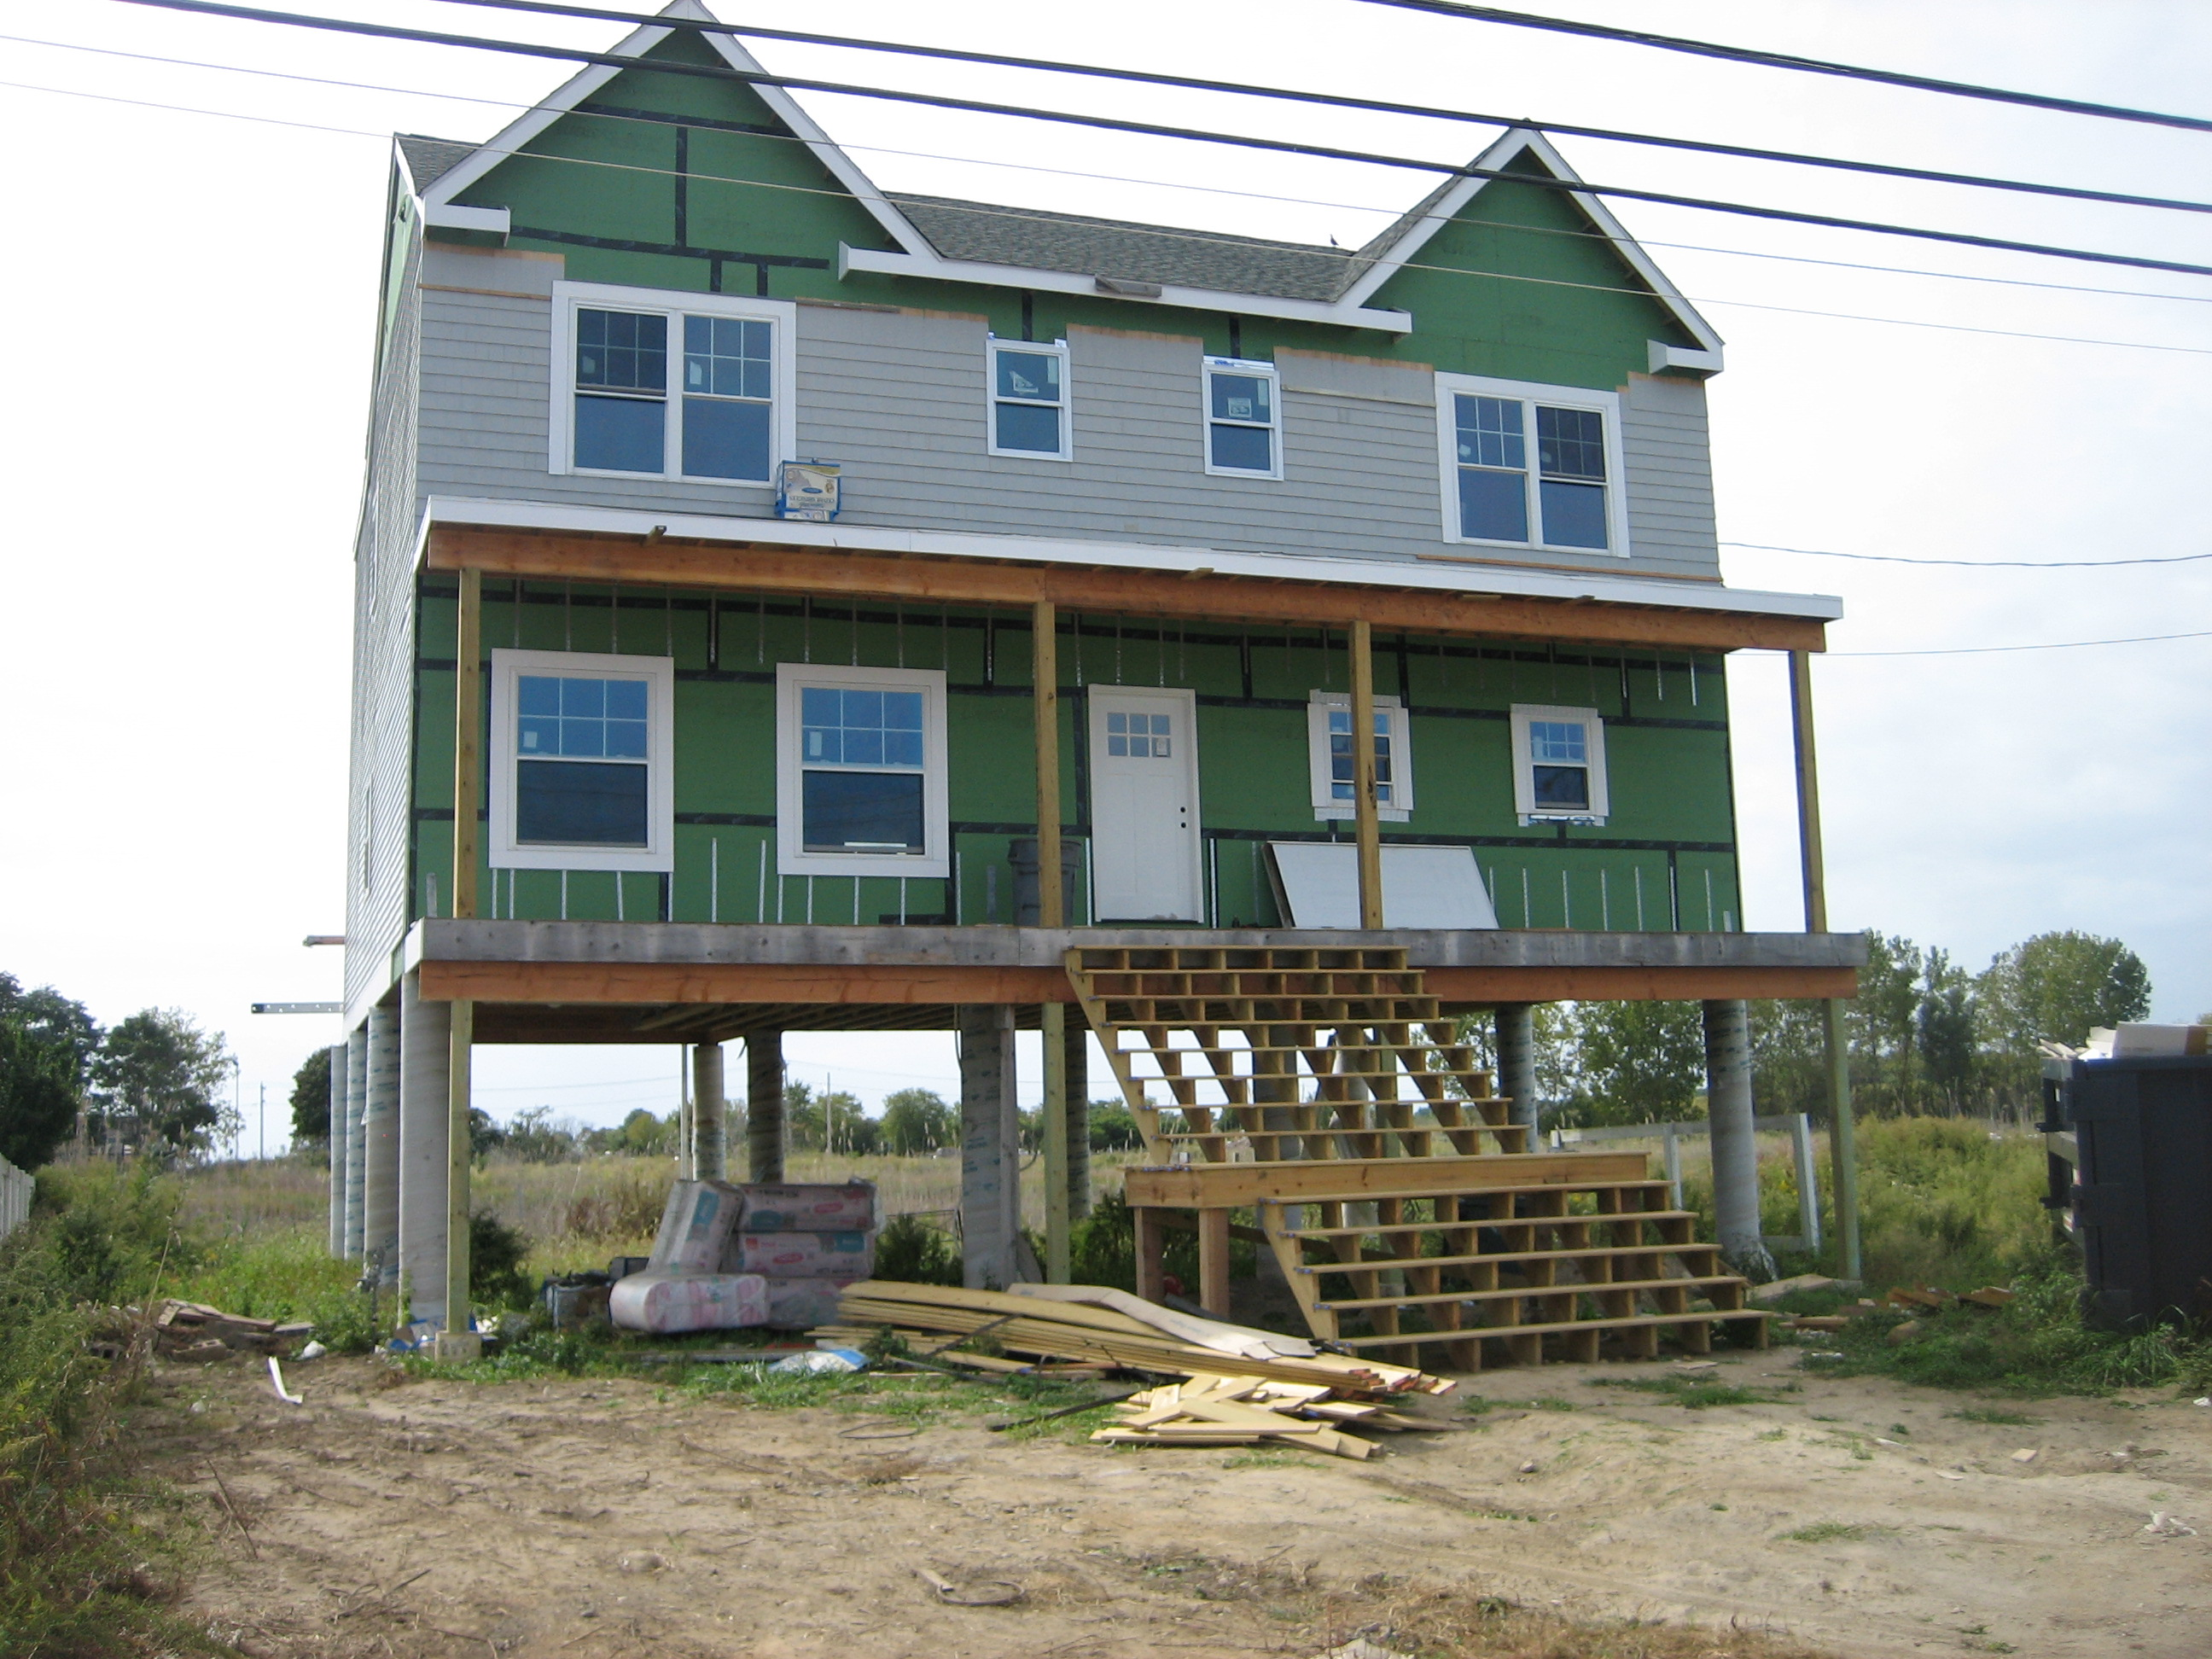 CT's repeat flood damage dilemma: move out or rebuild?